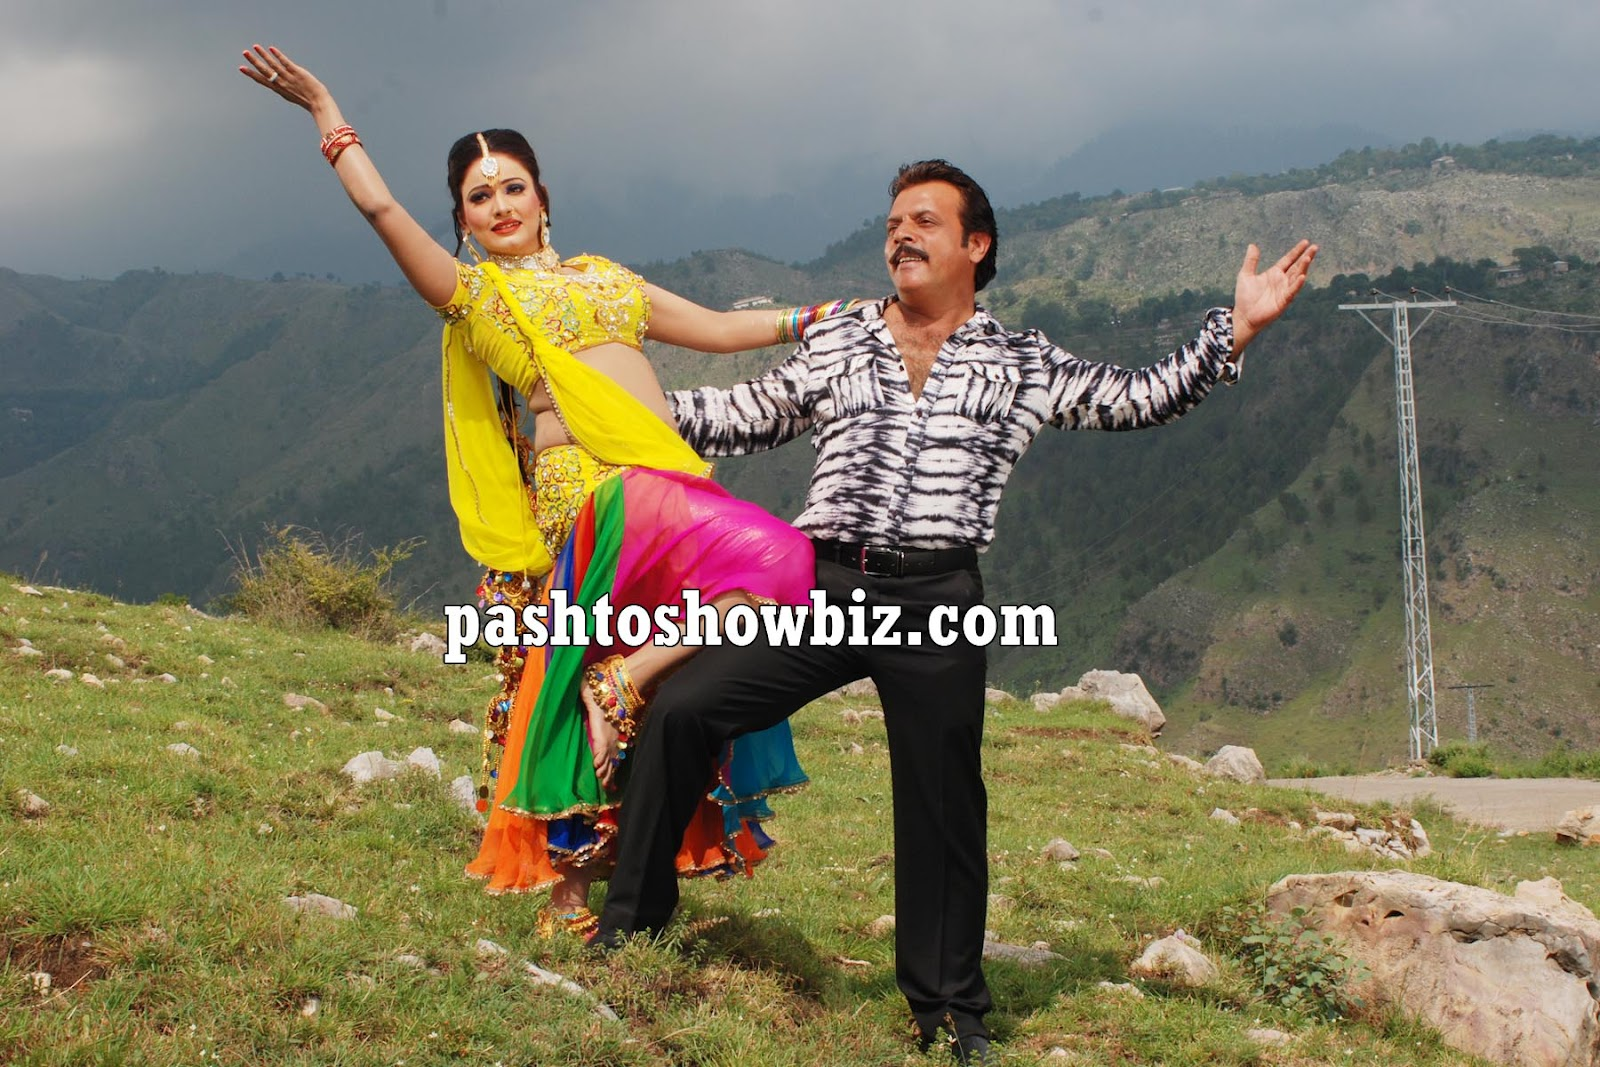 Sidra Noor Six http://www.pashtoshowbiz.com/2012/09/jahangir-khan-and-sidra-noor-new-photos.html